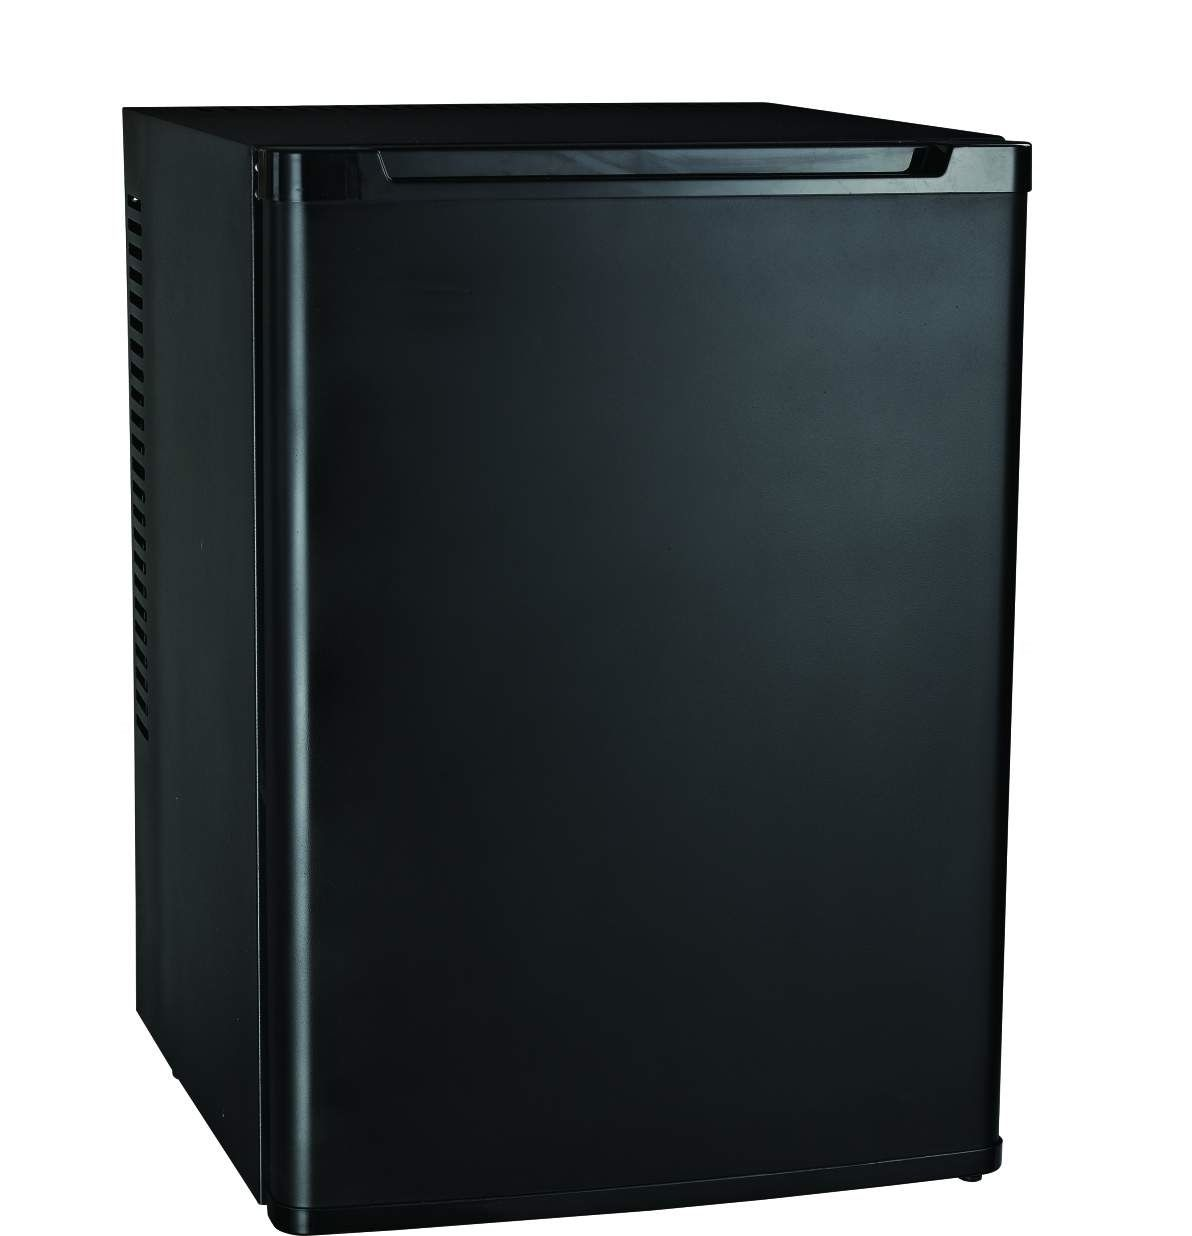 mc40 semi casting fridge silent quiet black wine mini fridge ebay. Black Bedroom Furniture Sets. Home Design Ideas